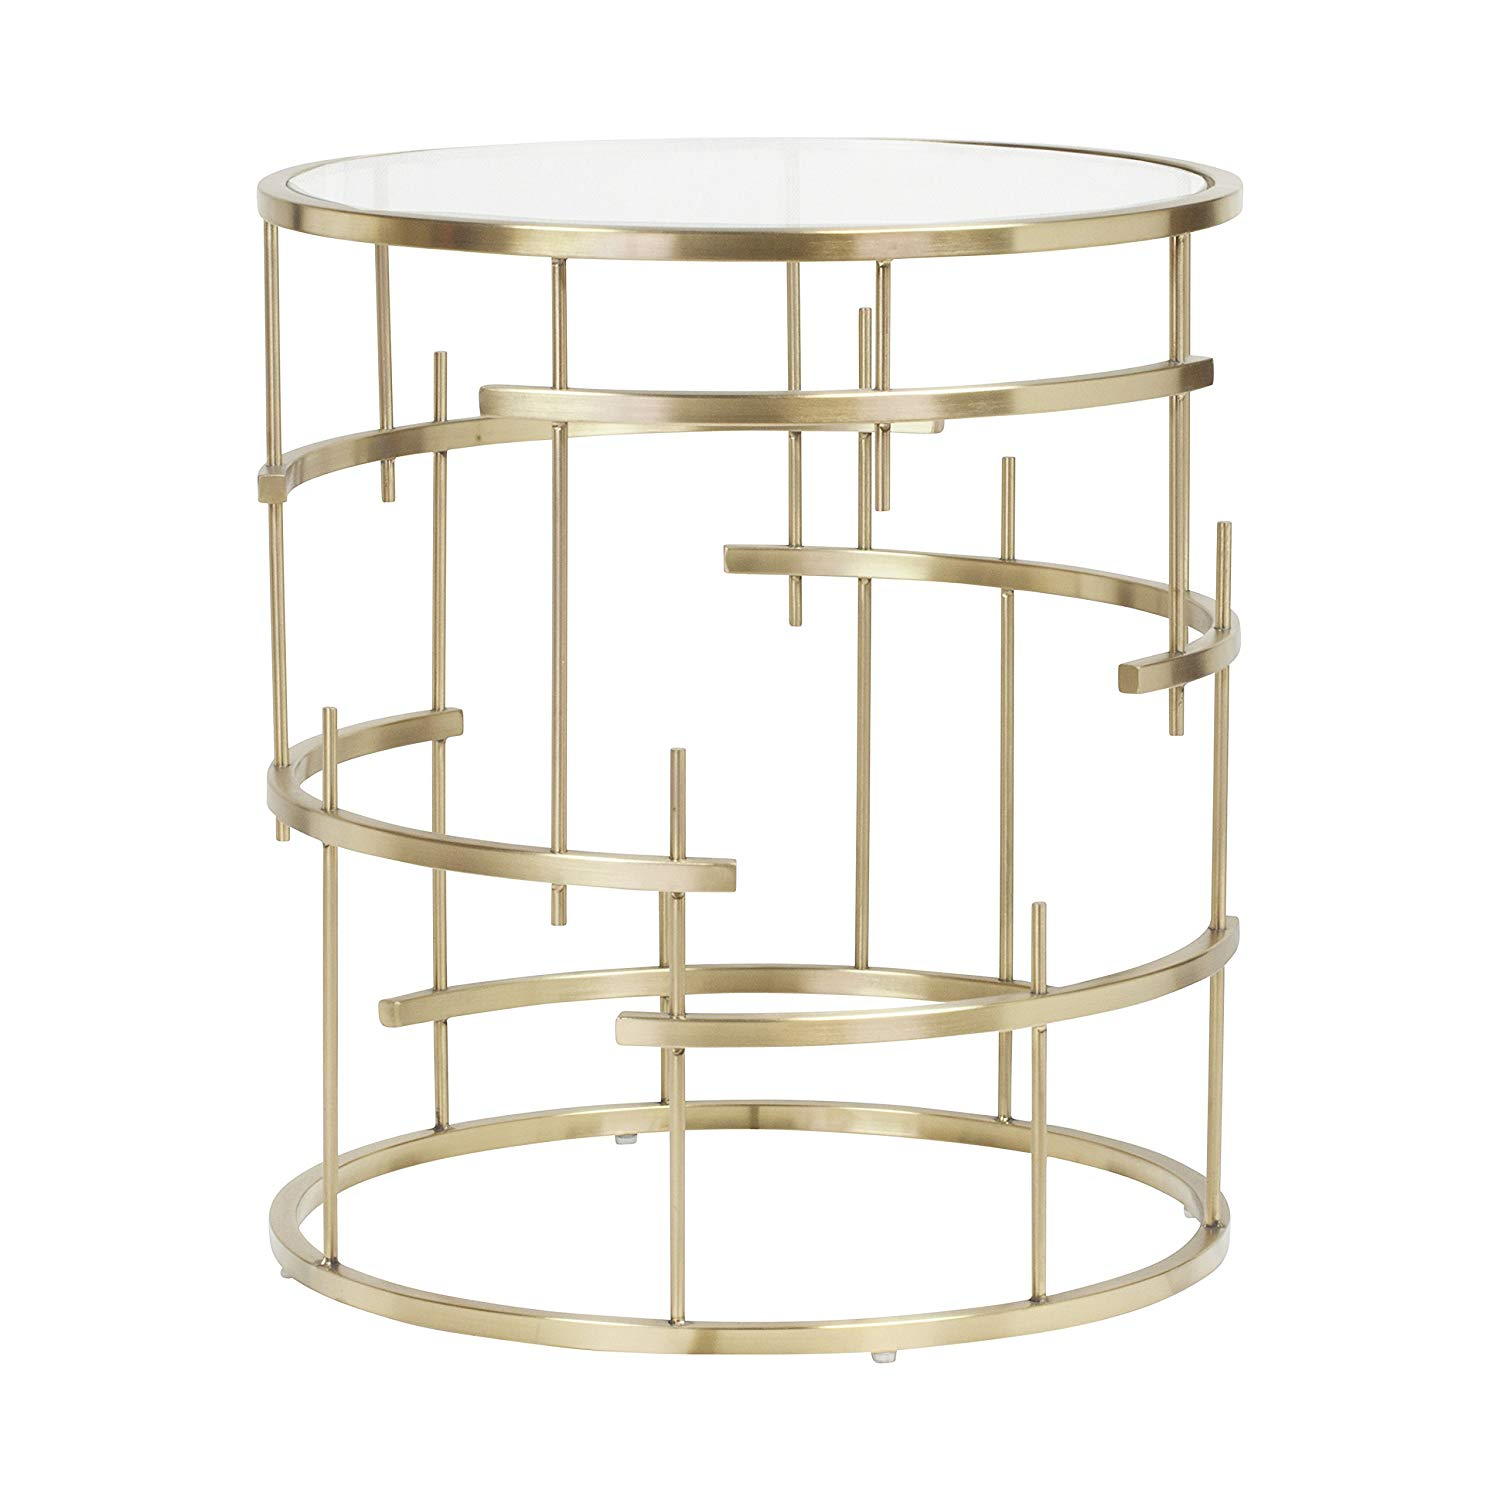 design tree home esme end table brushed gold and glass accent top kitchen dining knobs handles small sofa lamps bedroom side decor west elm set hallway ideas outdoor umbrella